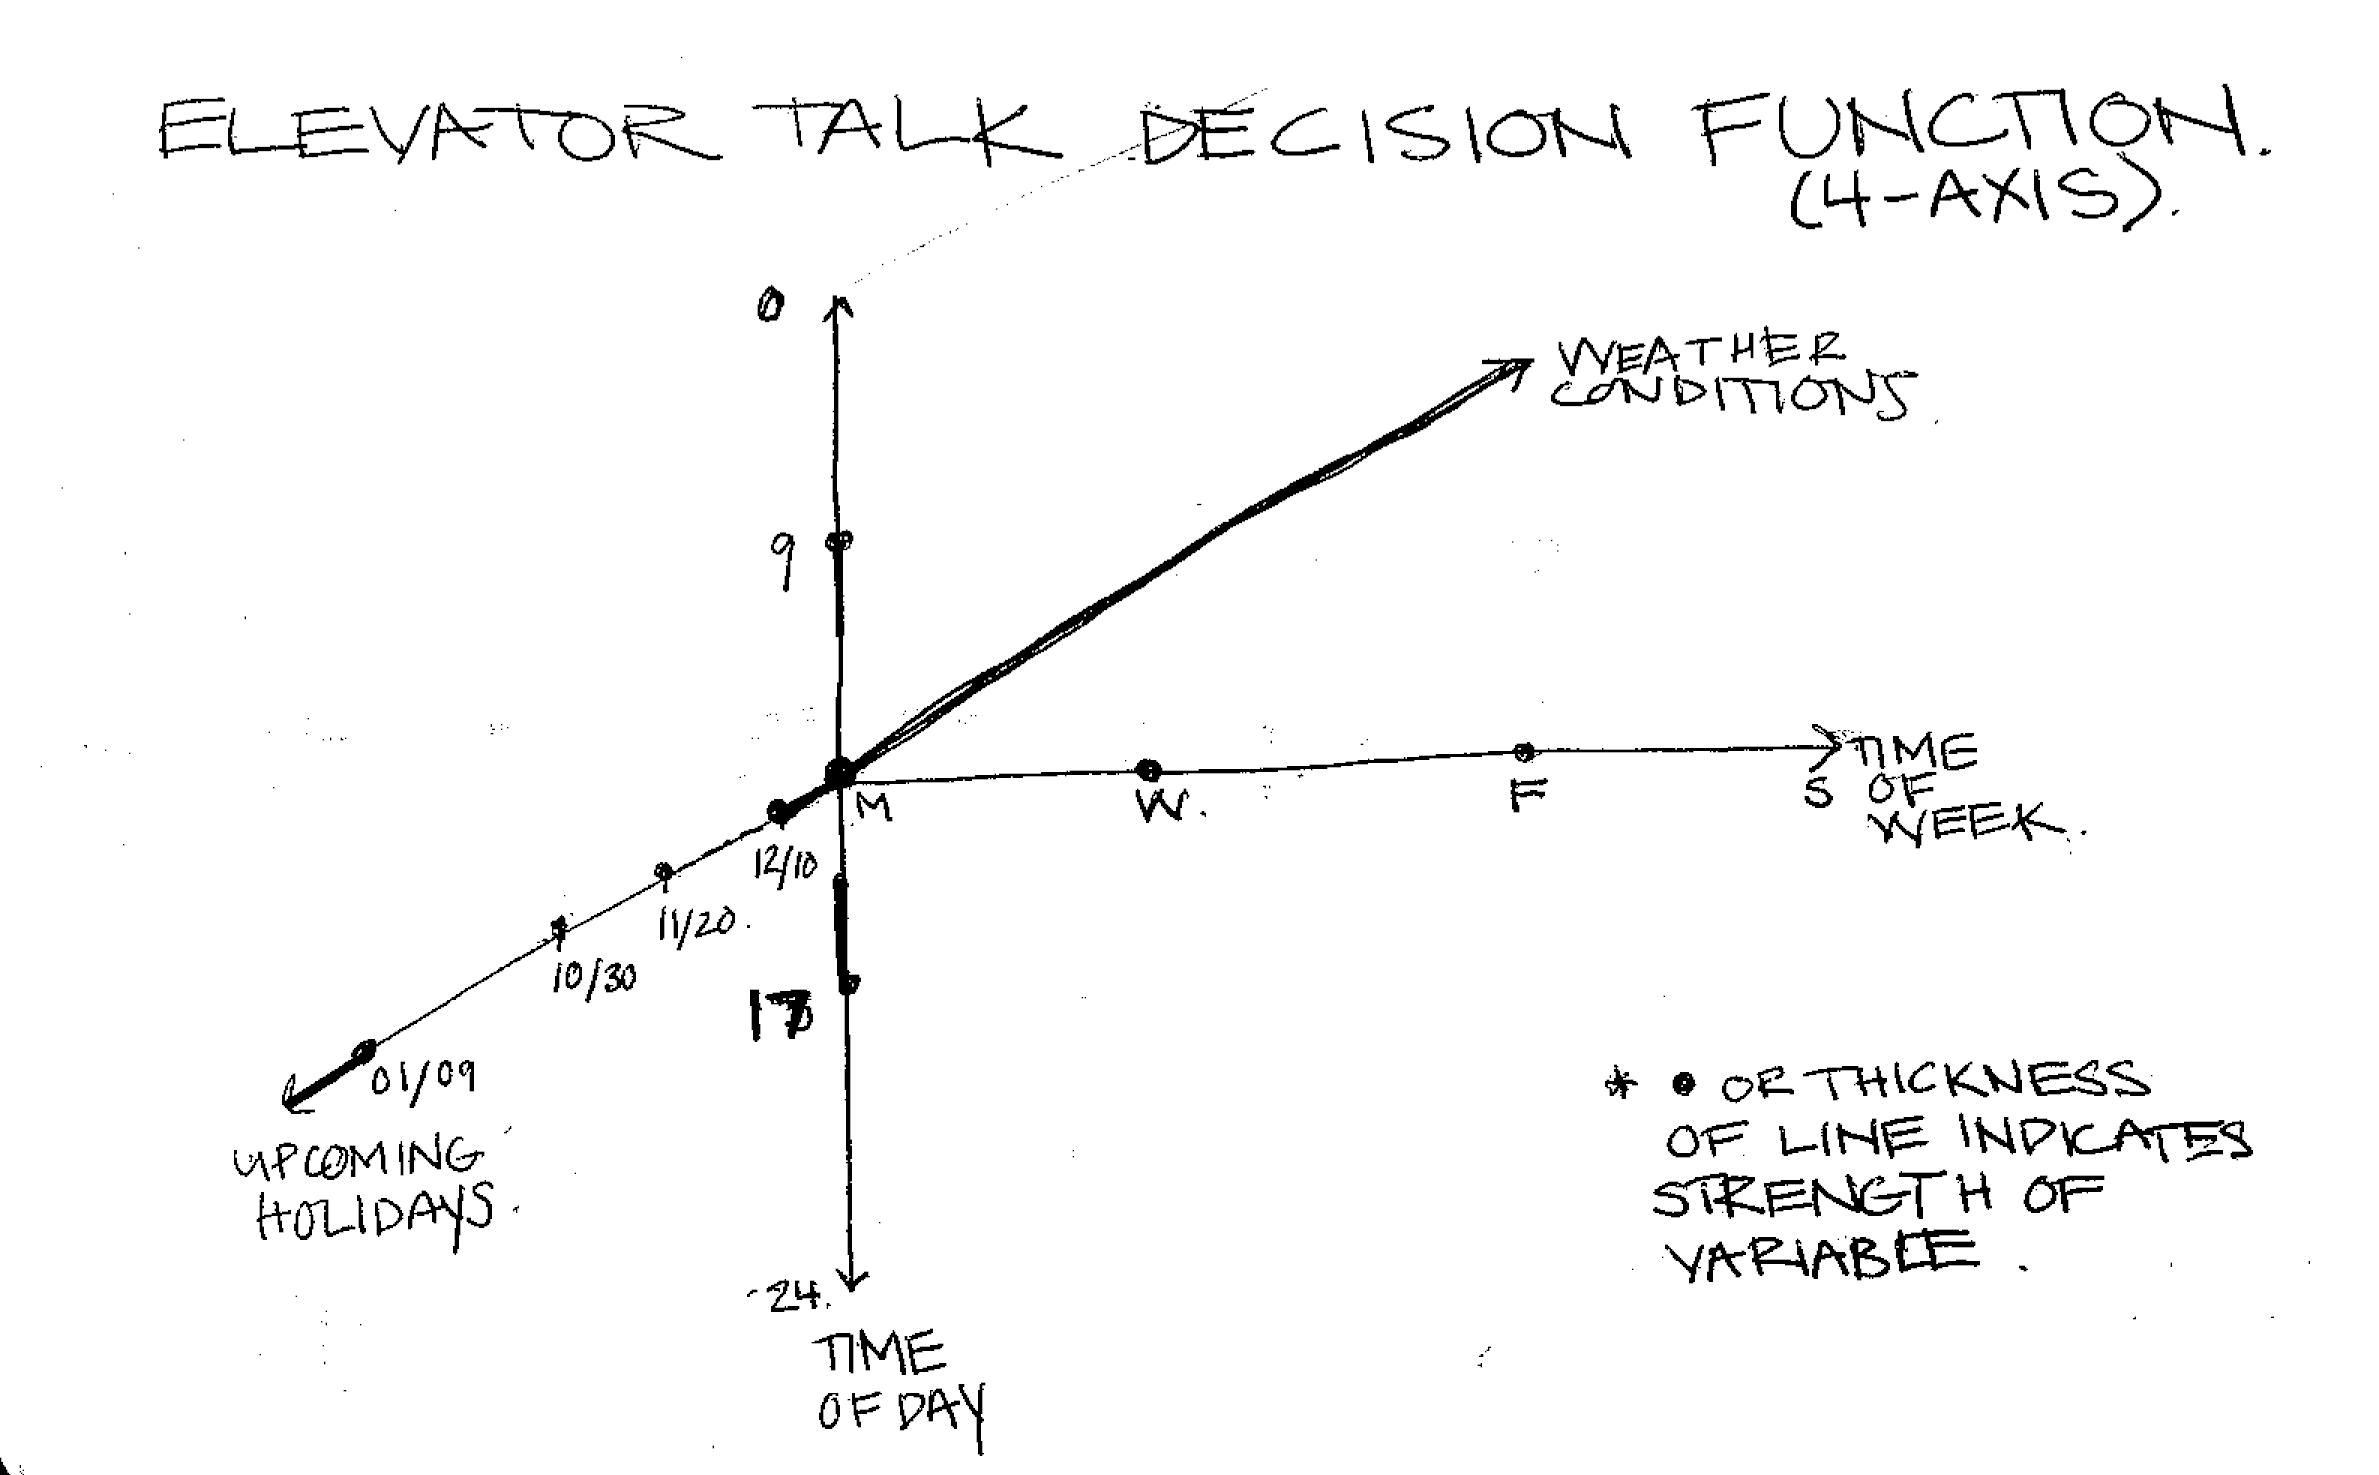 laurel bancroft archive elevator talk decision function elevator talk decision function